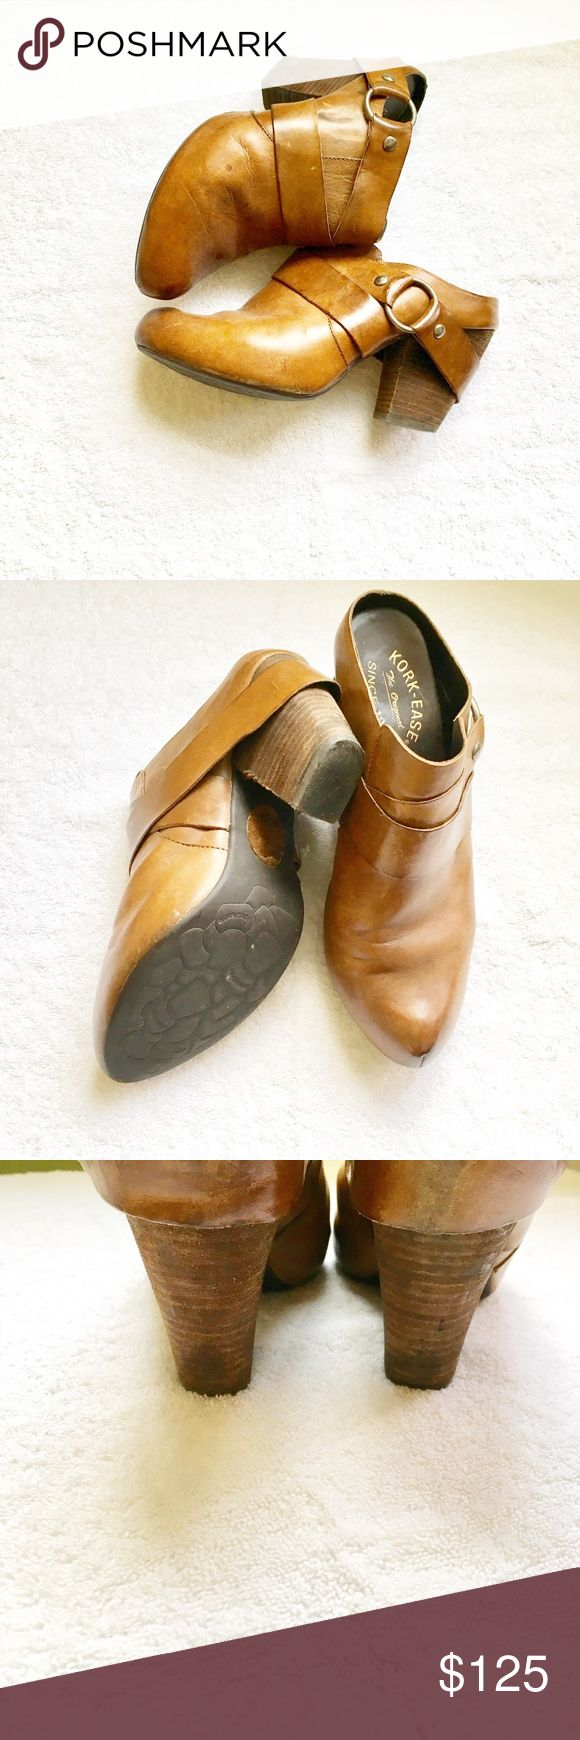 KORK EASE Leather slip ones,  Size 8.5 KORK EASE slip ones,  Size 8.5 Leather upper and lining.  Cognac brown with silver colored buckle.  Very gently used.   Hardly worn size 8.5 Kork-Ease Mules / Clogs. Originally purchased from Nordstrom.KORK EASE  MSRP $225 FROM NORDSTROM Kork Ease Shoes Mules & Clogs